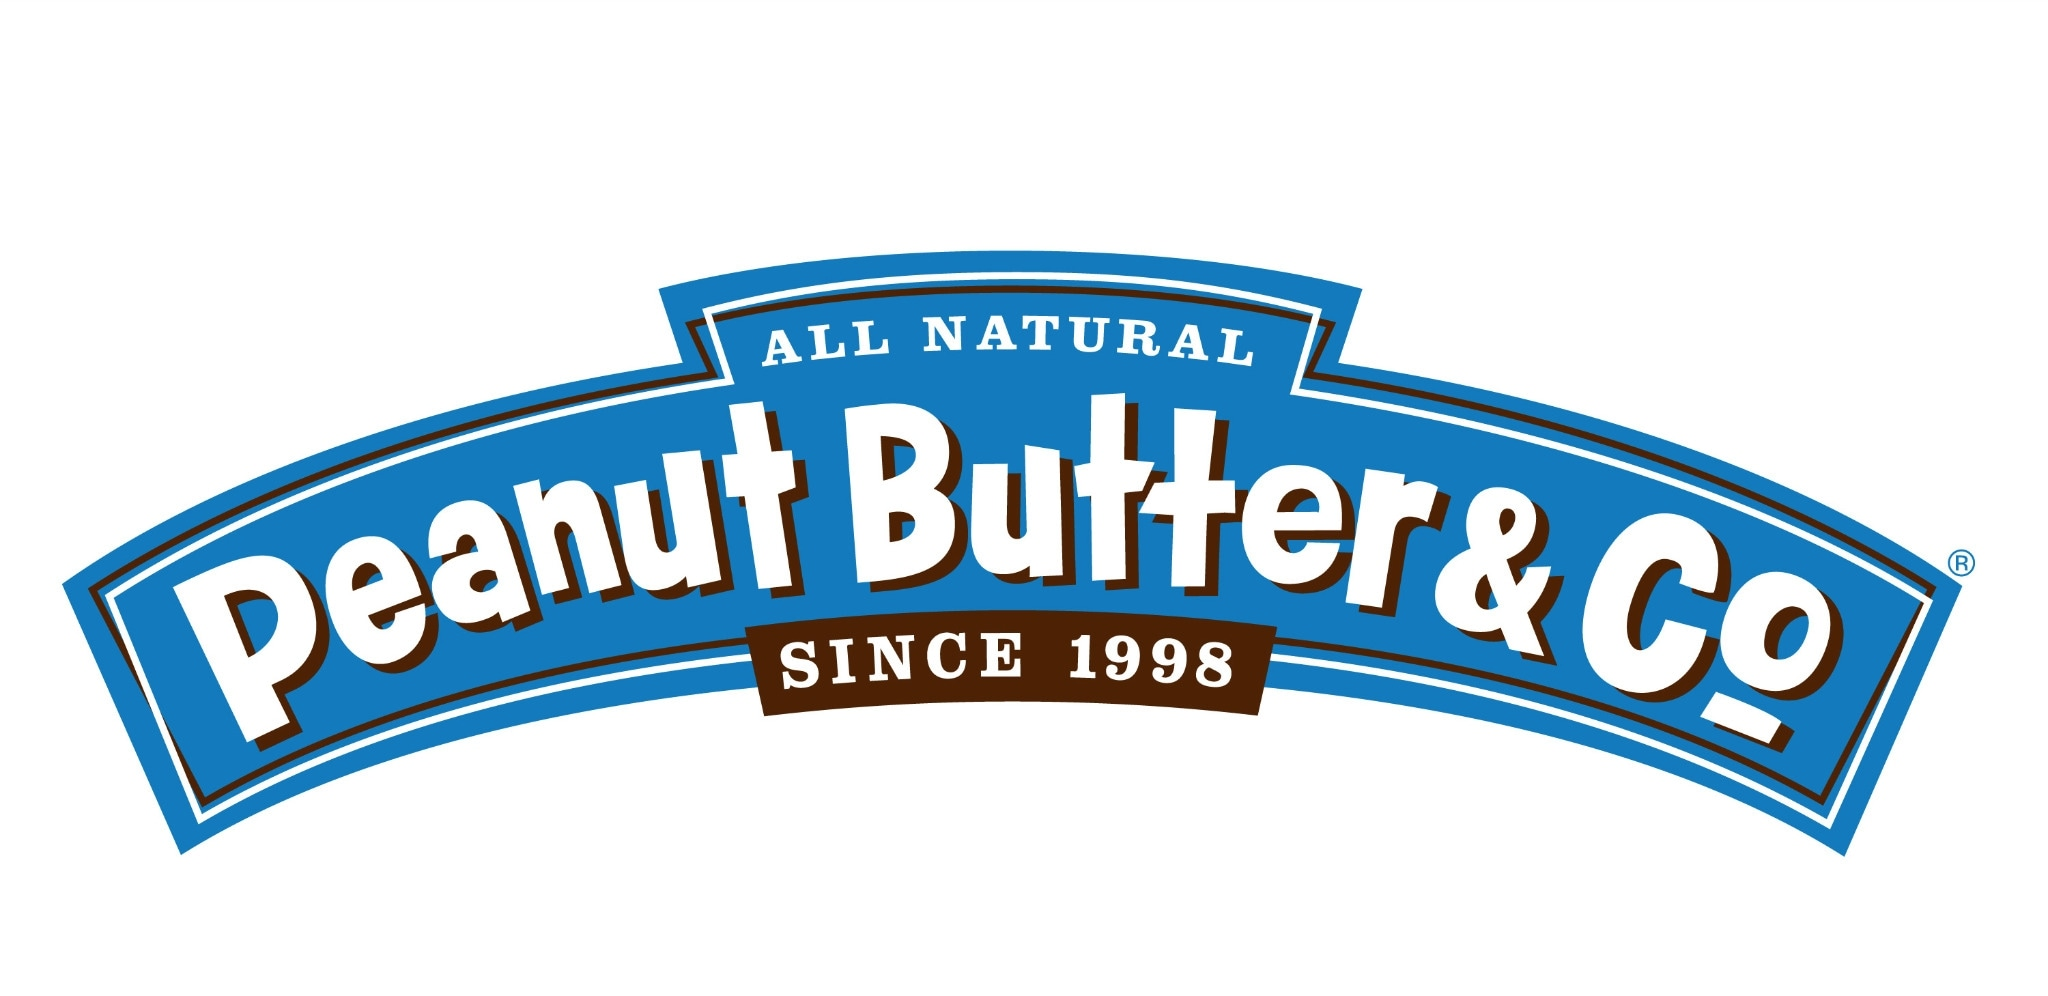 Peanut Butter & Co. promo codes